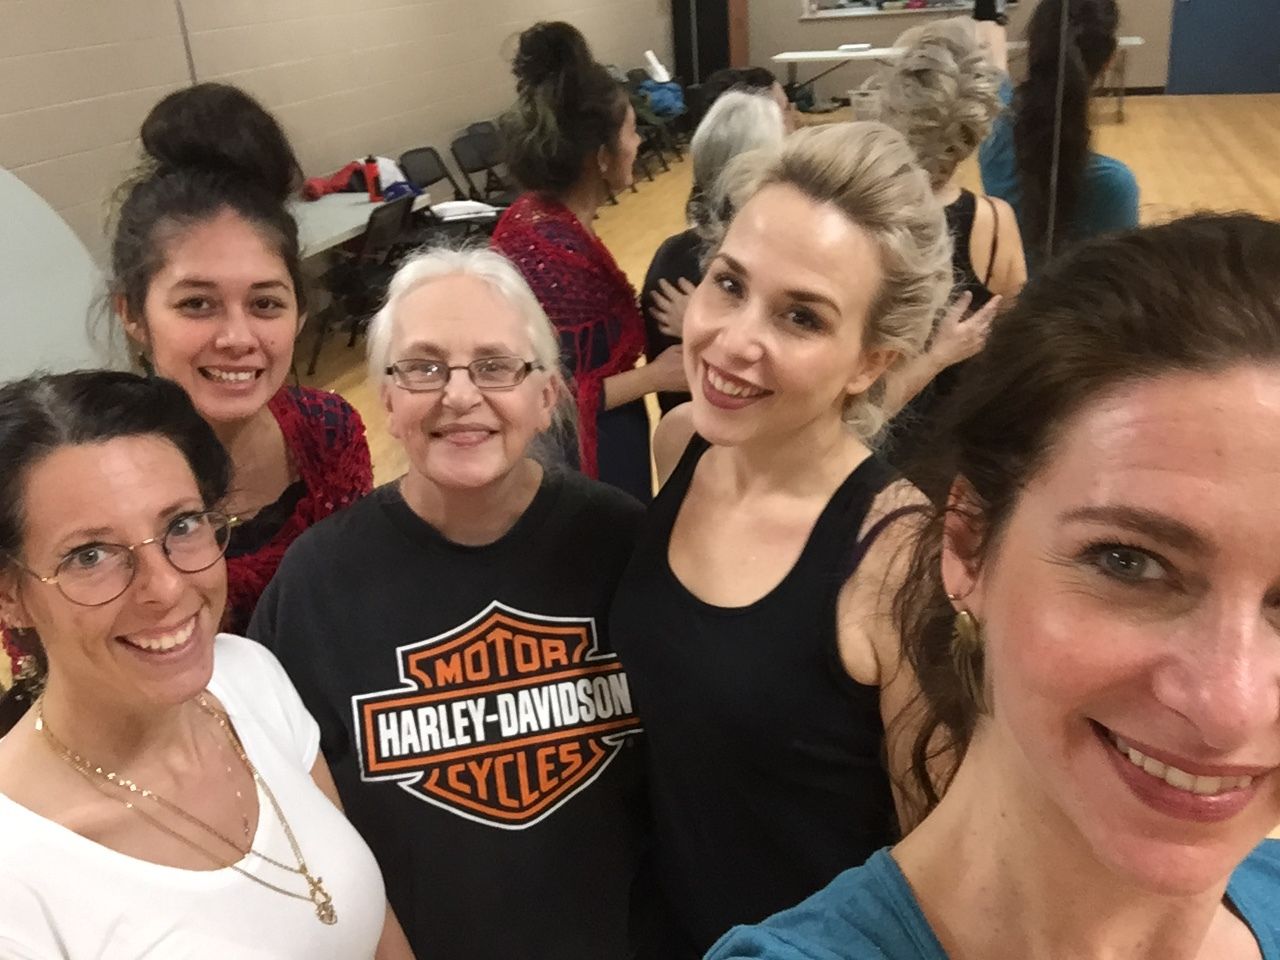 Dance classes are a great way to make friends!